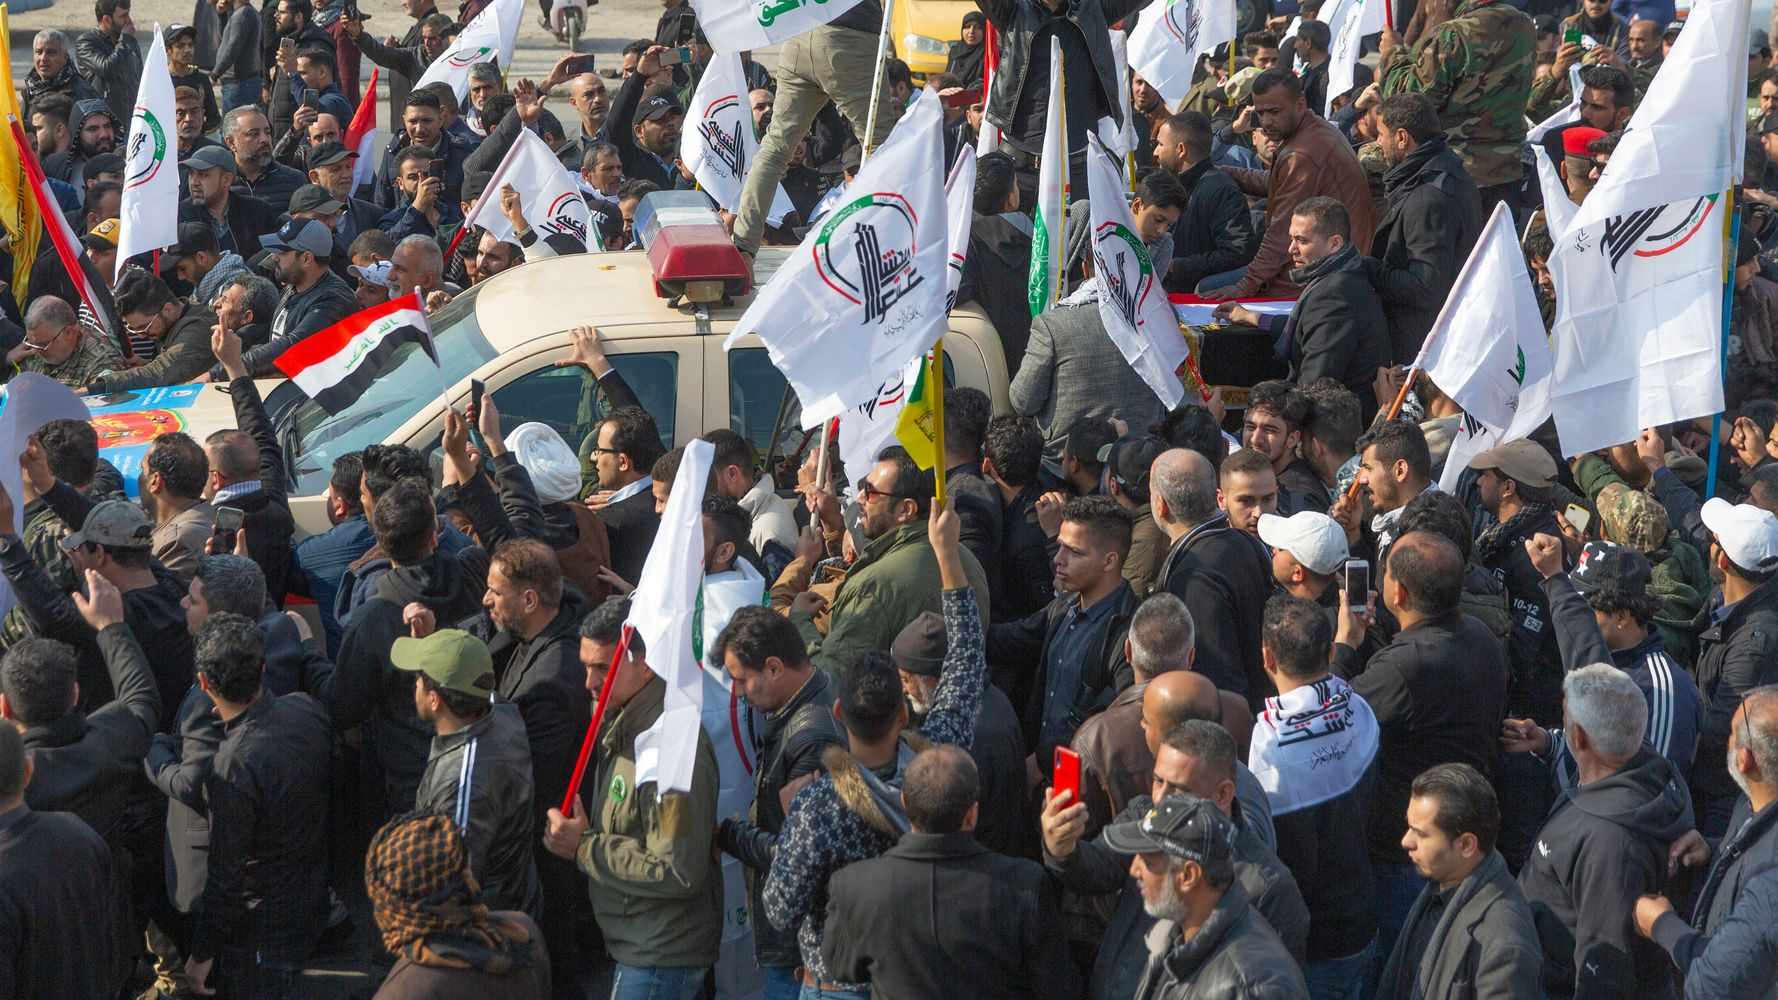 Mourners Chant 'Death To America' In Qassem Soleimani Funeral Procession